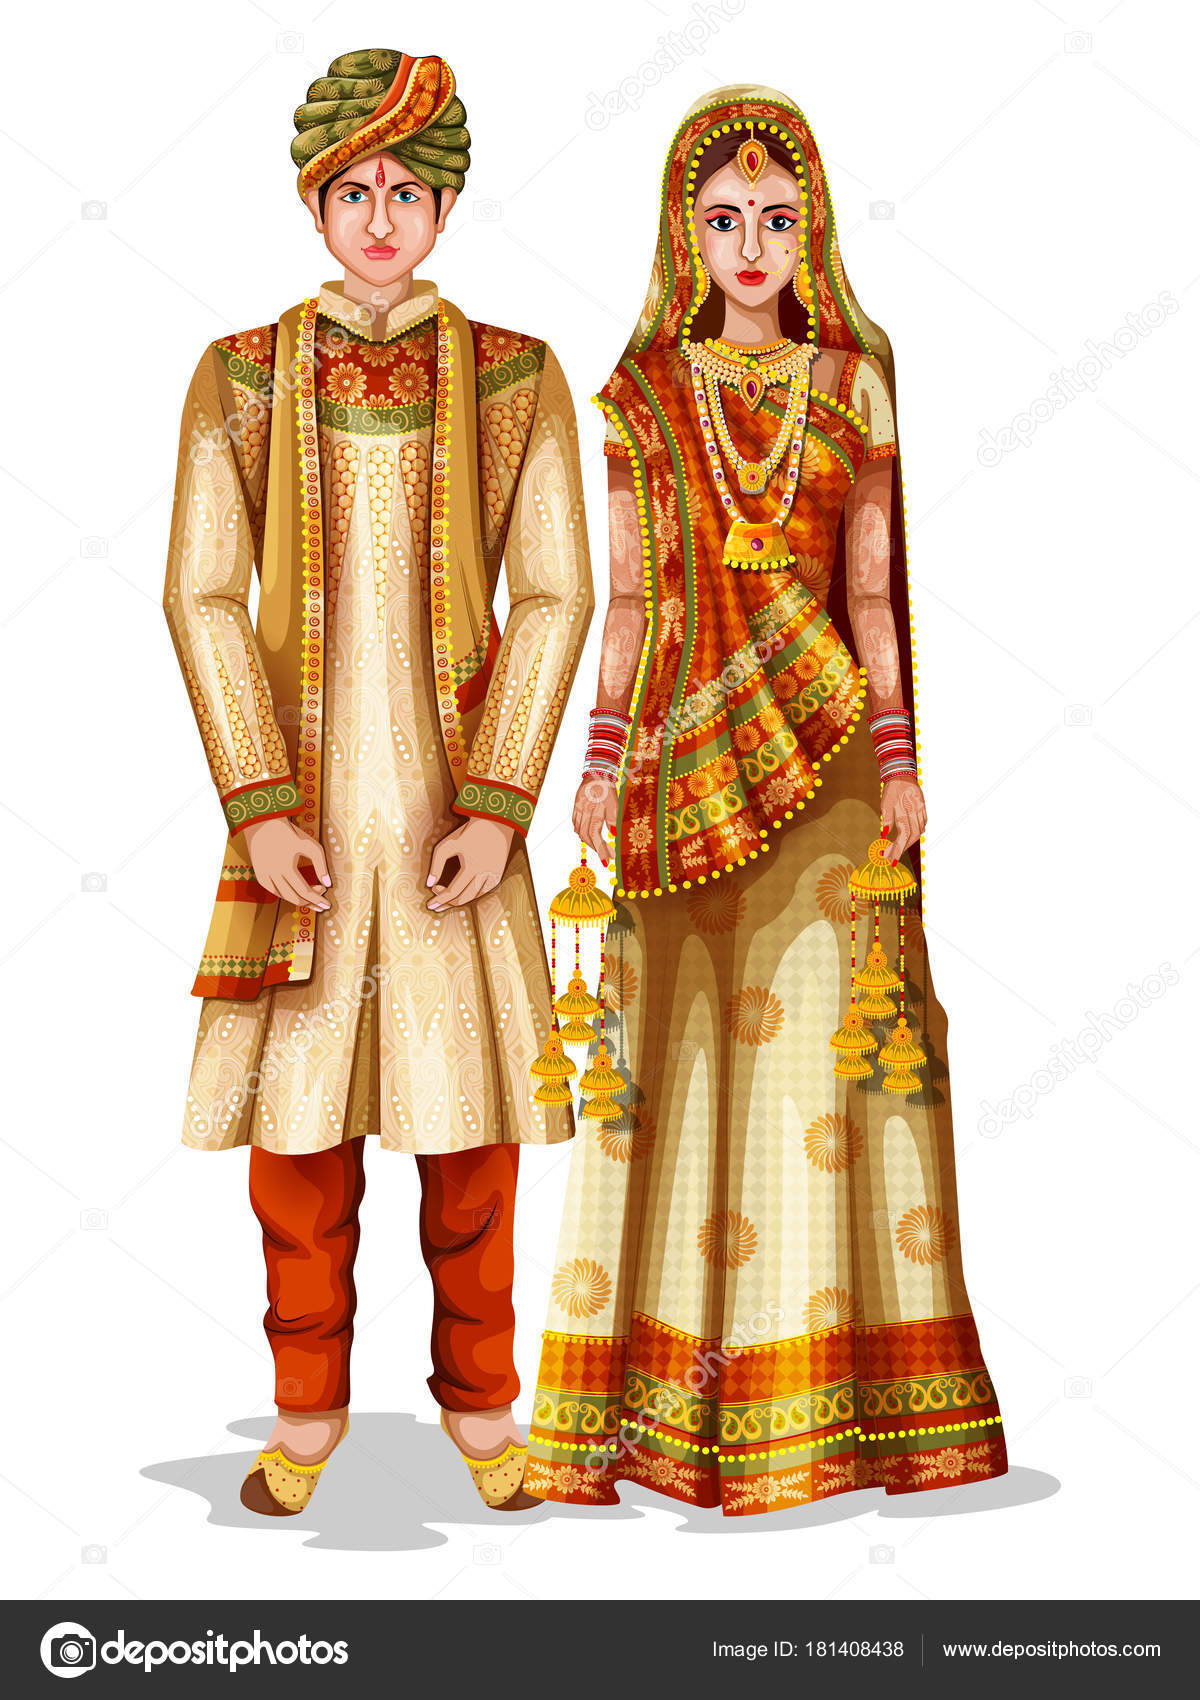 ddb16ac892 Haryanvi wedding couple in traditional costume of Haryana, India — Stock  Vector